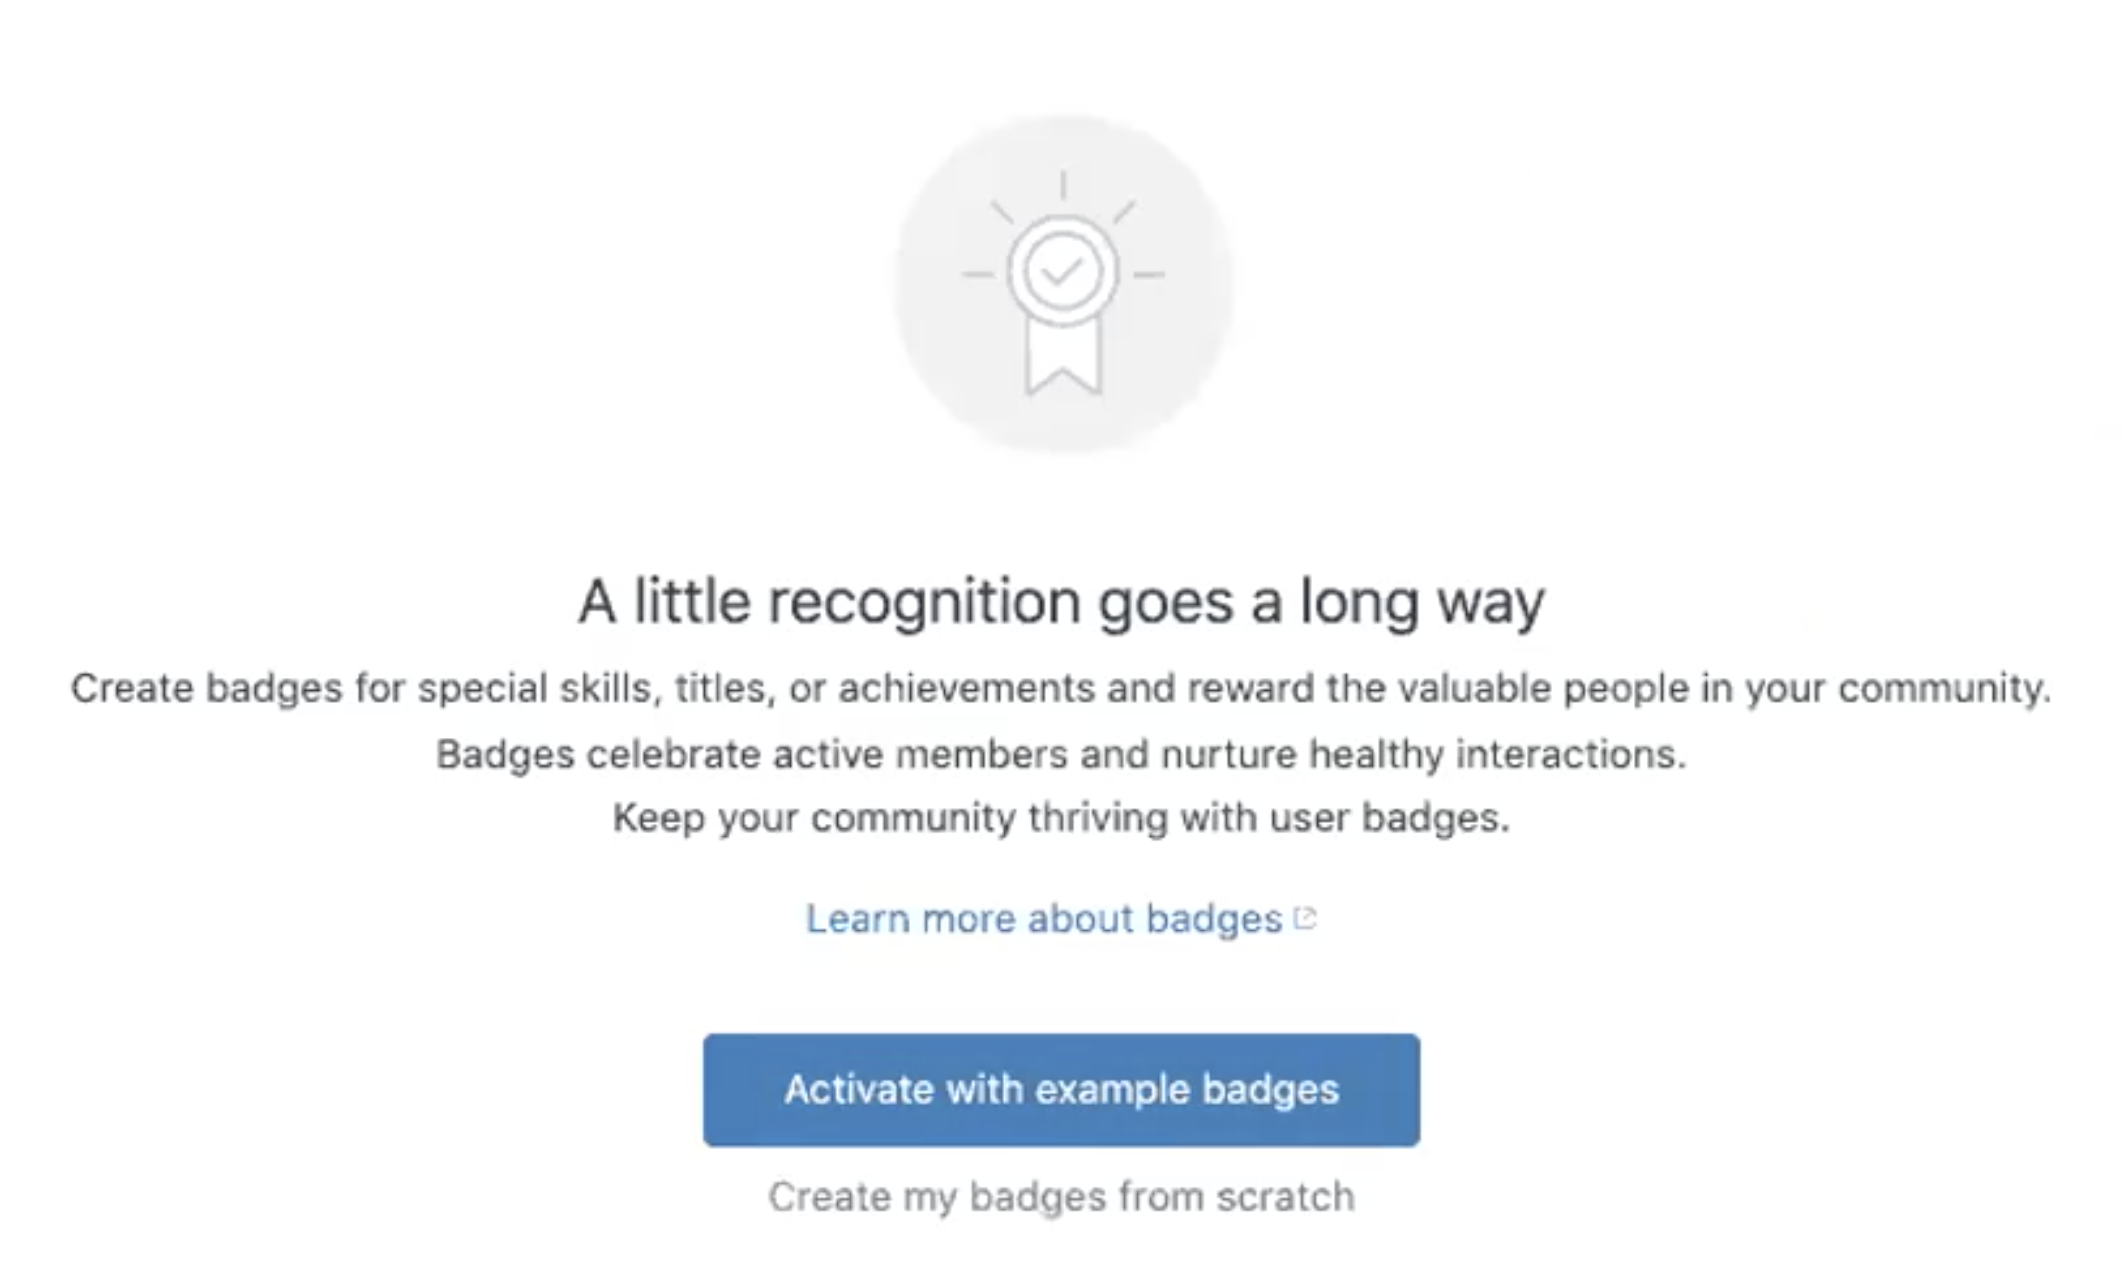 gather_badges_activate_with_example_badges.png